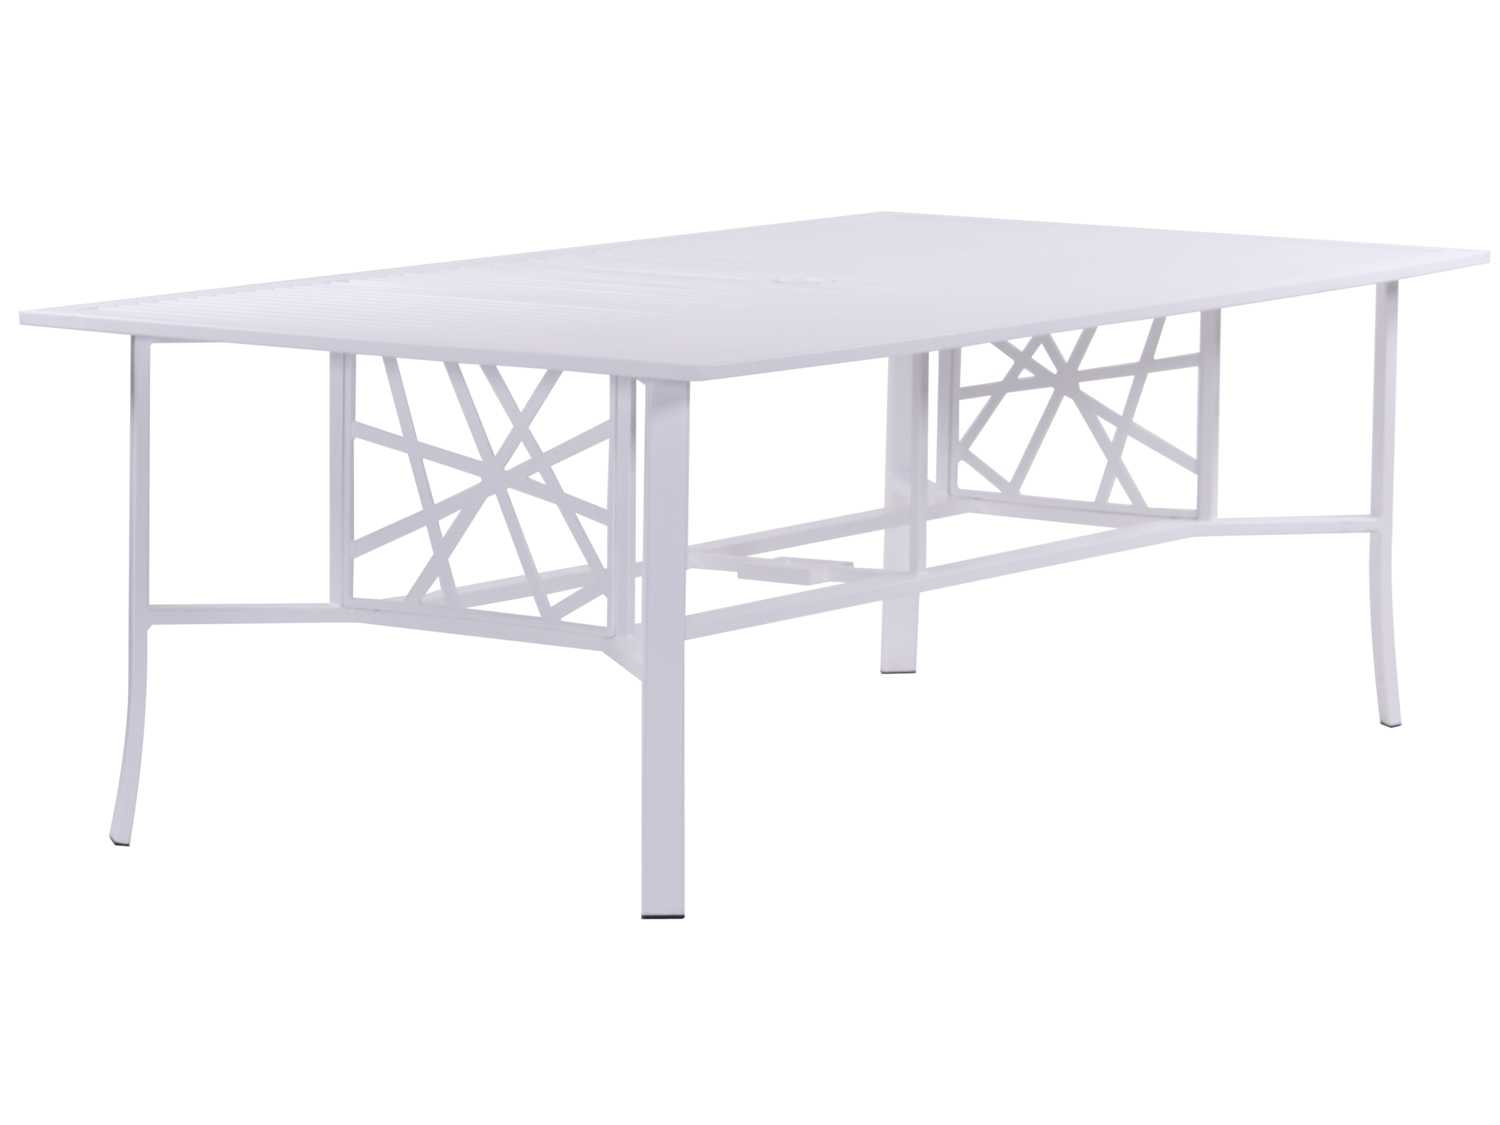 Koverton Parkview Knest Cast Aluminum 87 X 44 Rectangular Dining Table With H